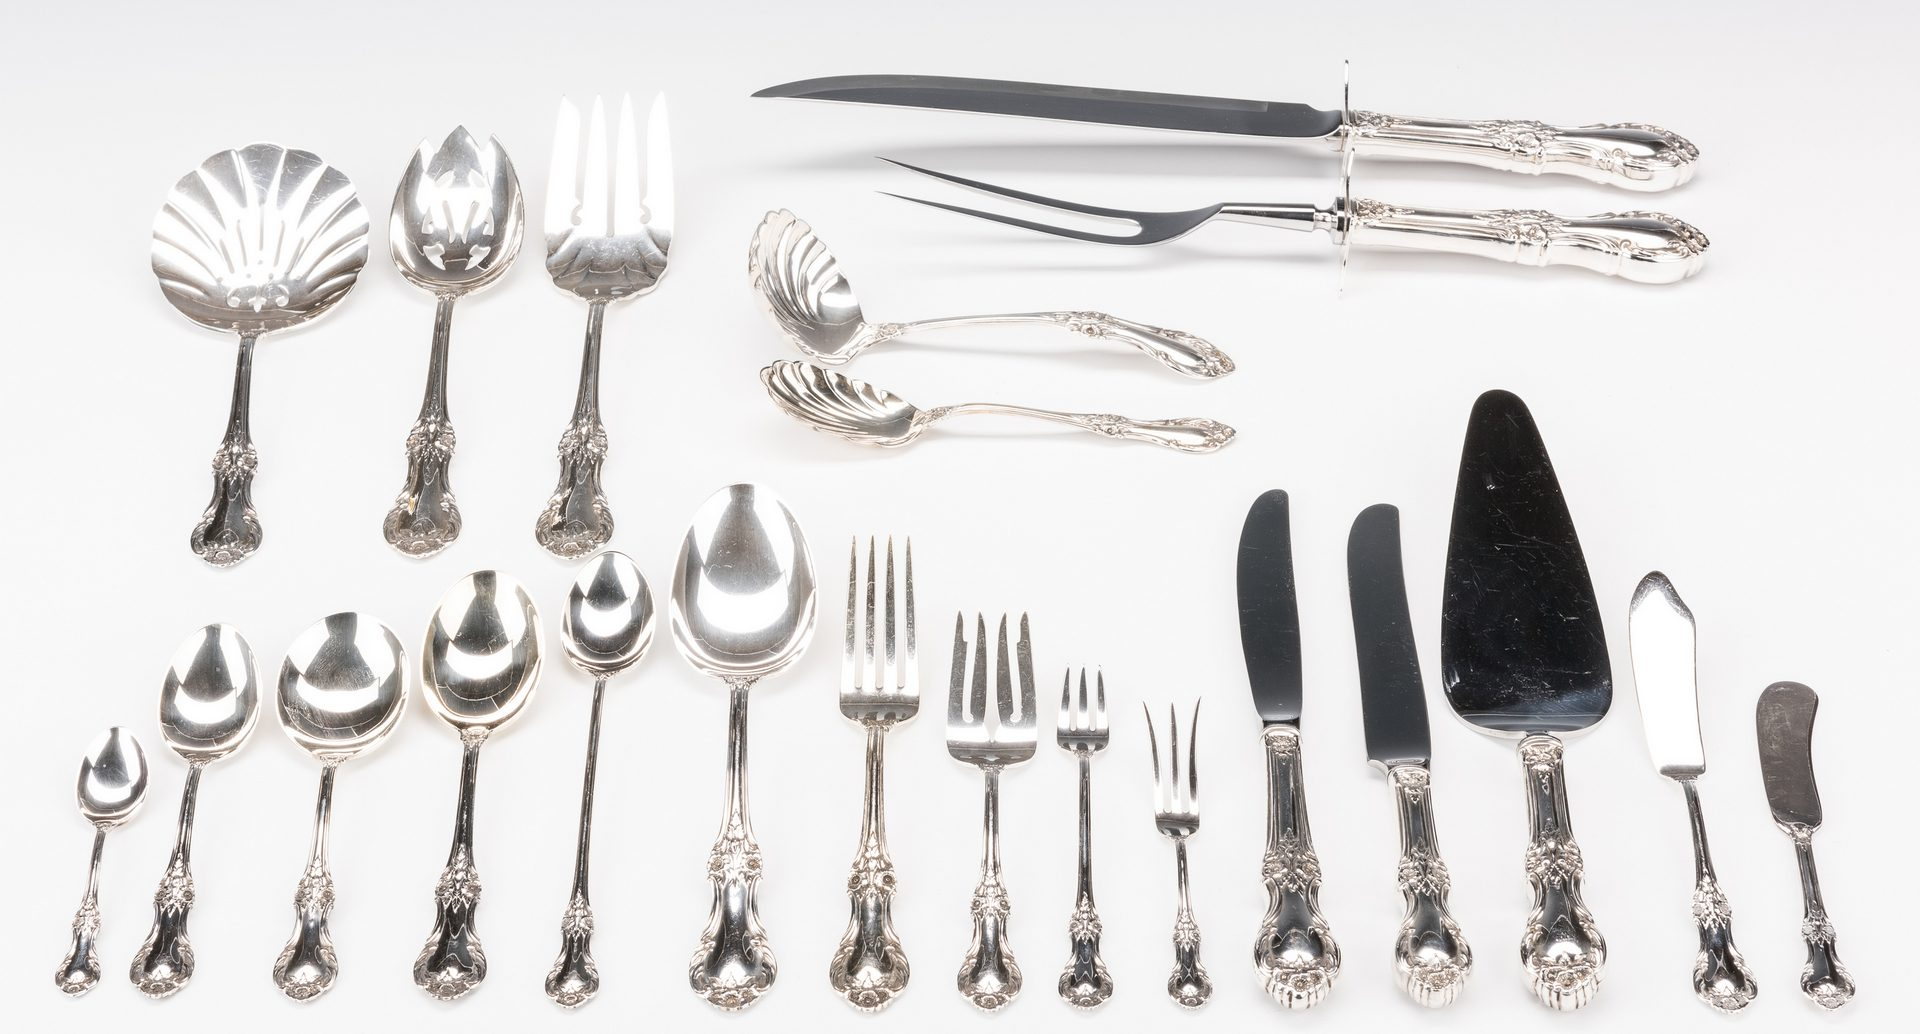 Lot 70: International Wild Rose Sterling Flatware, 122 pcs